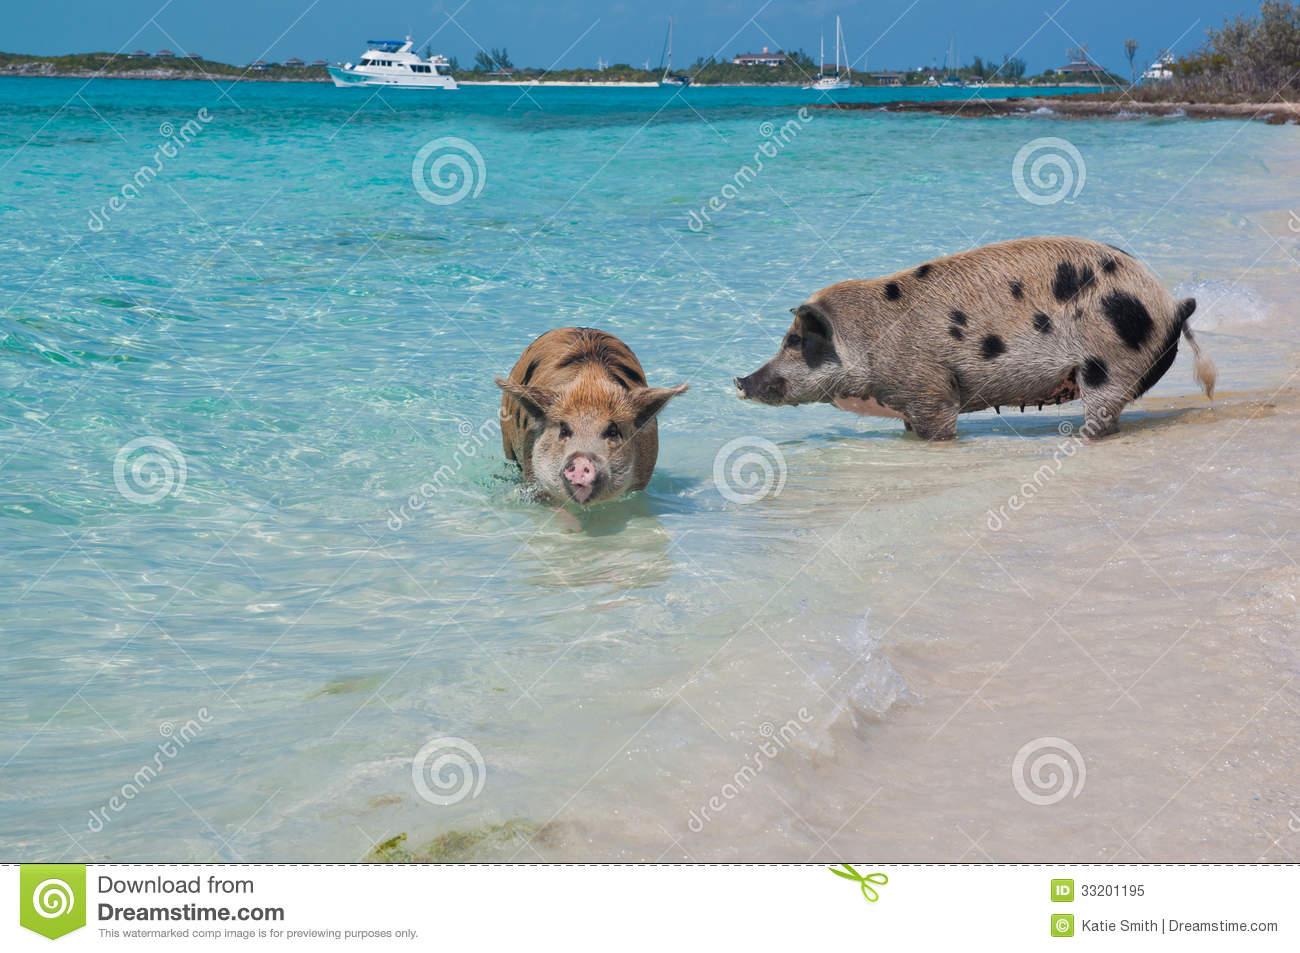 Wild pigs on Big Majors Island in The Bahamas, lounging and walking ...